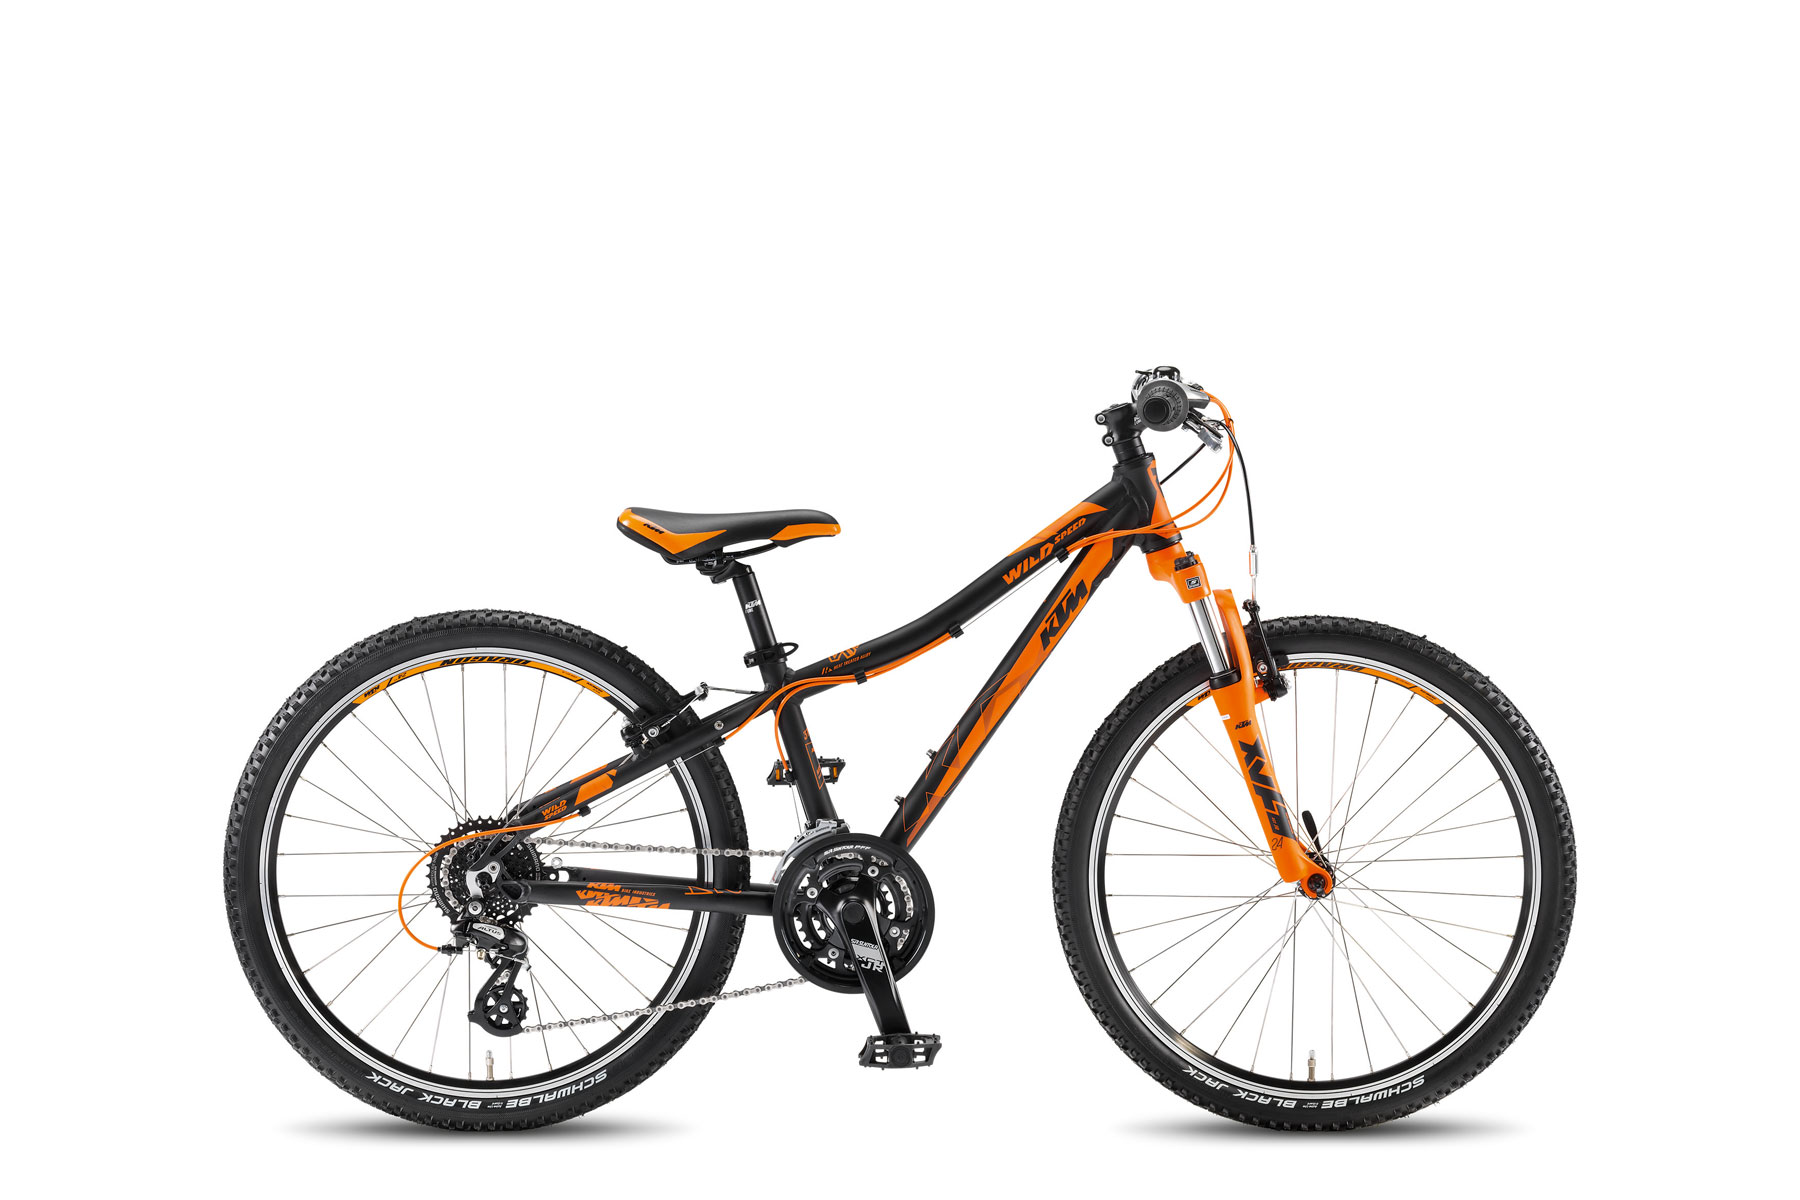 wild-speed-24-24-disc-31-matt-black-orange-cs